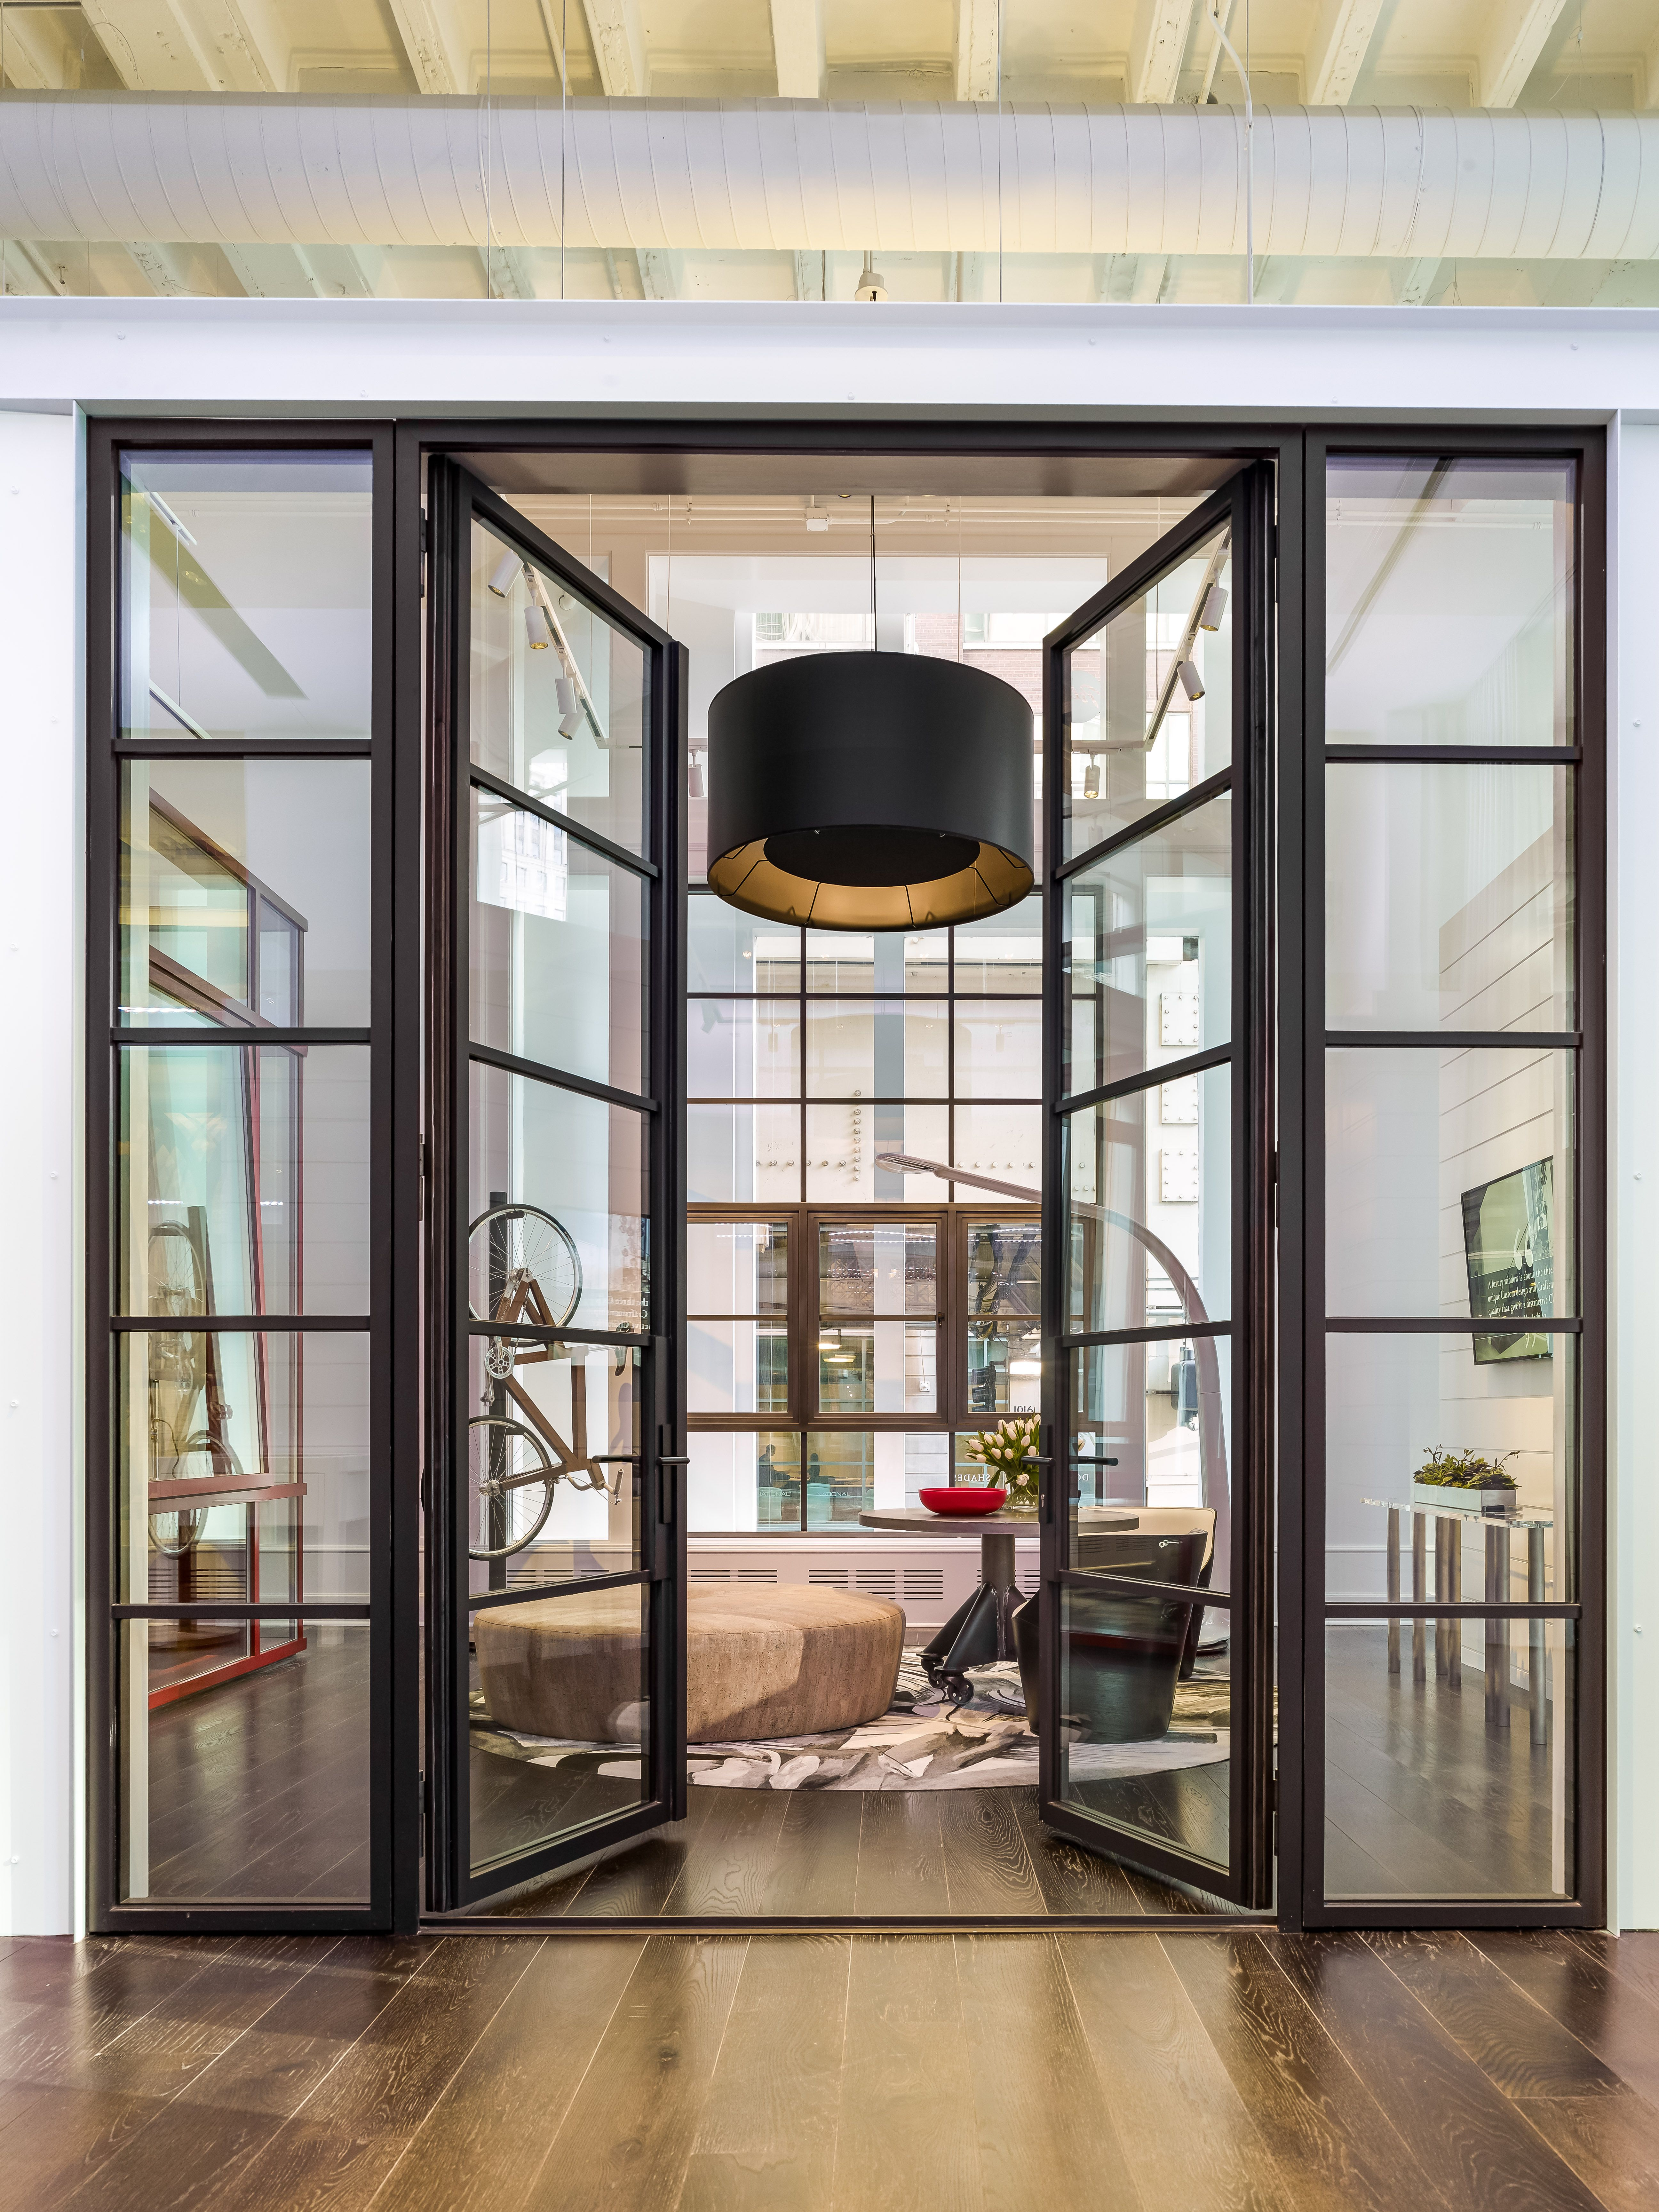 The Pella Crafted Luxury Showroom Artfully Displays Windows And Doors Within Six Style Vignettes Including Urban Loft Steel With